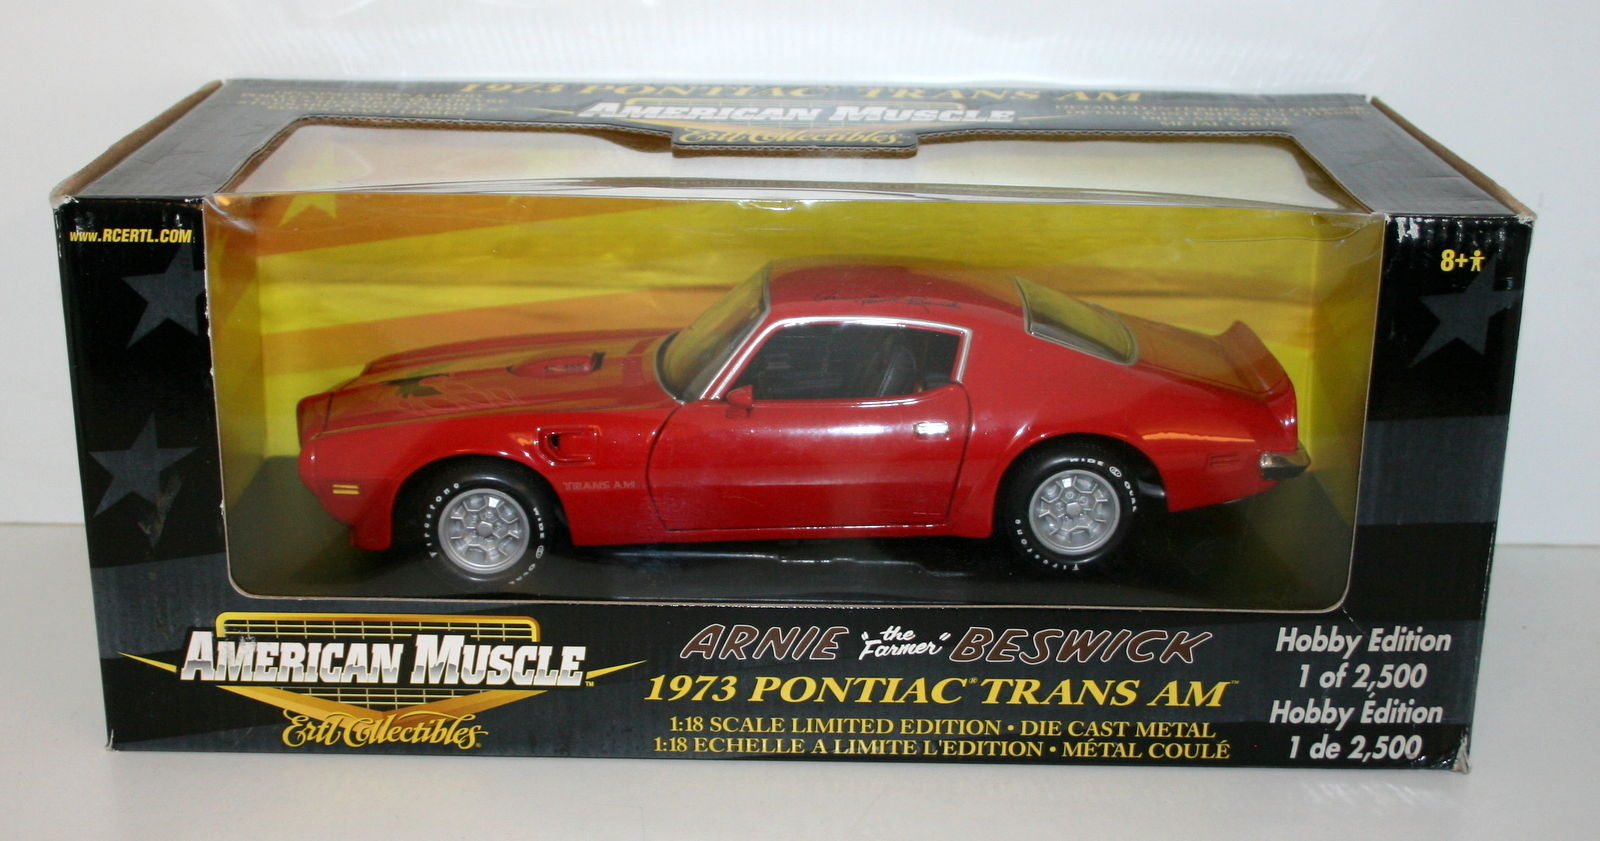 Ertl American Muscle 1 18 36682 1973 Pontiac Trans Am Arnie Scale Diecast Model By